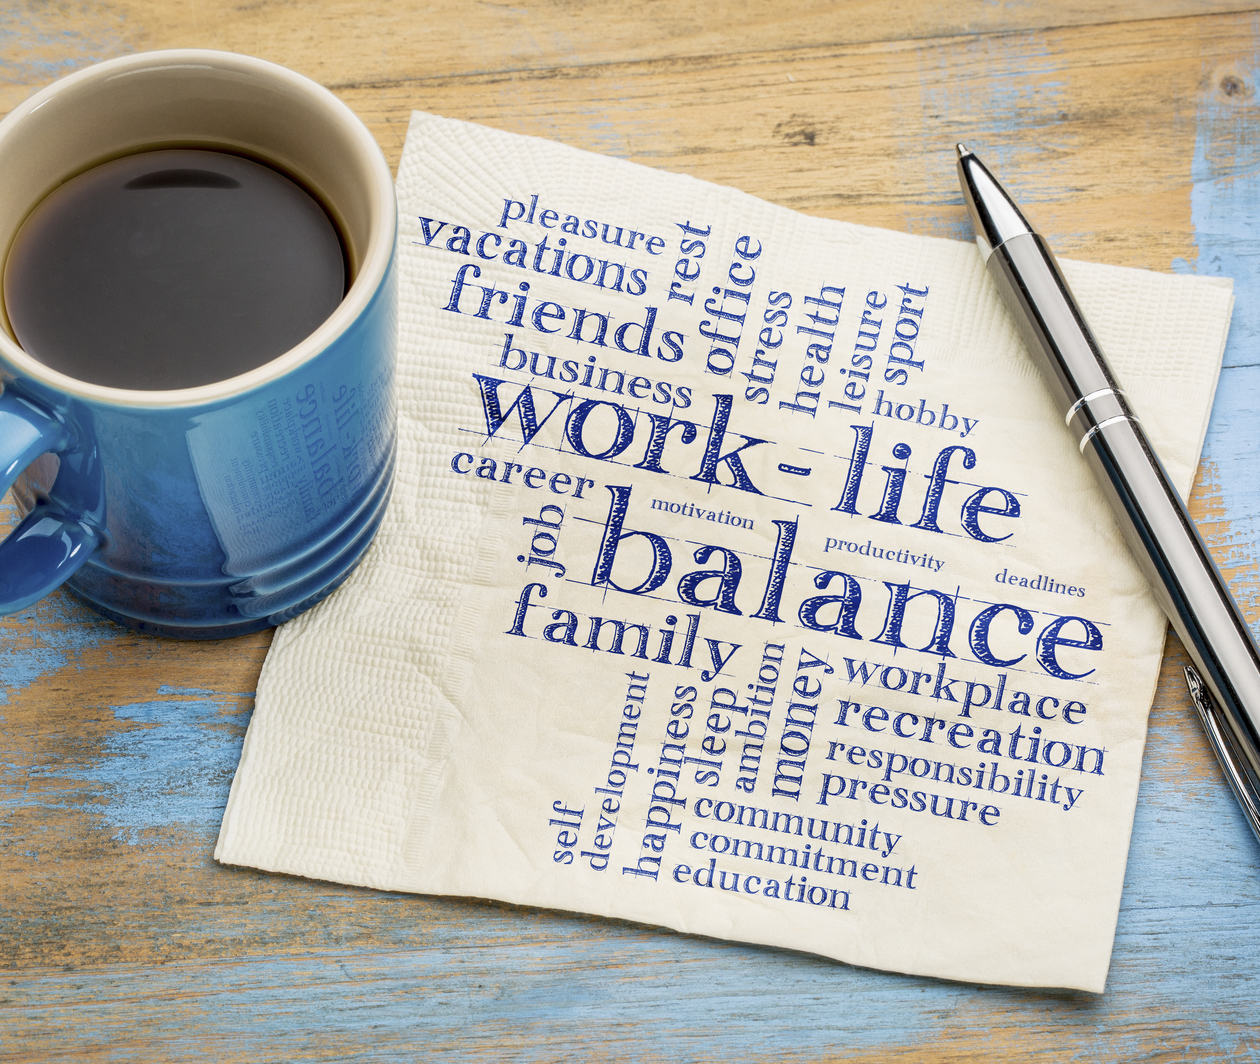 Work-Life Balance and the Impact of Remote Working